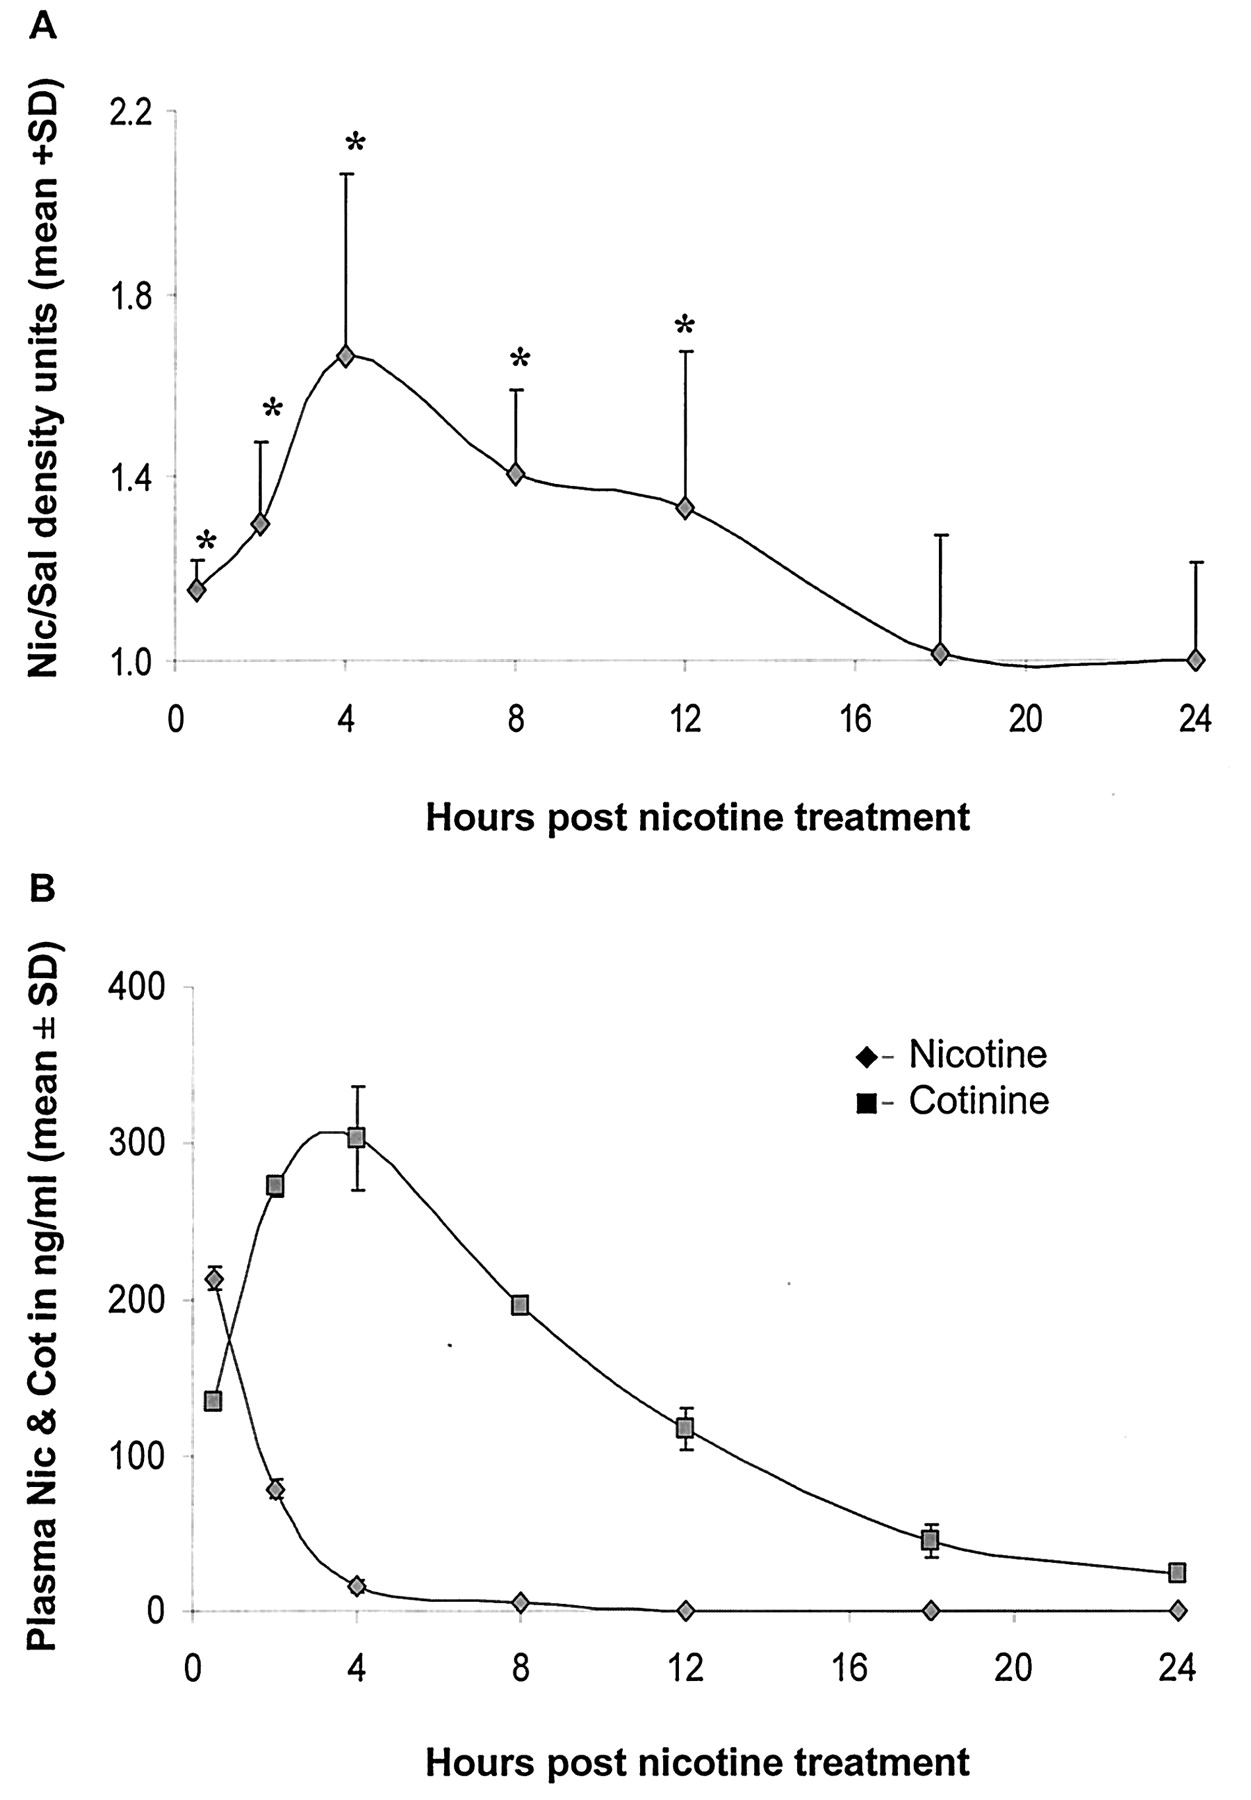 Rat Hepatic CYP2E1 Is Induced by Very Low Nicotine Doses: An